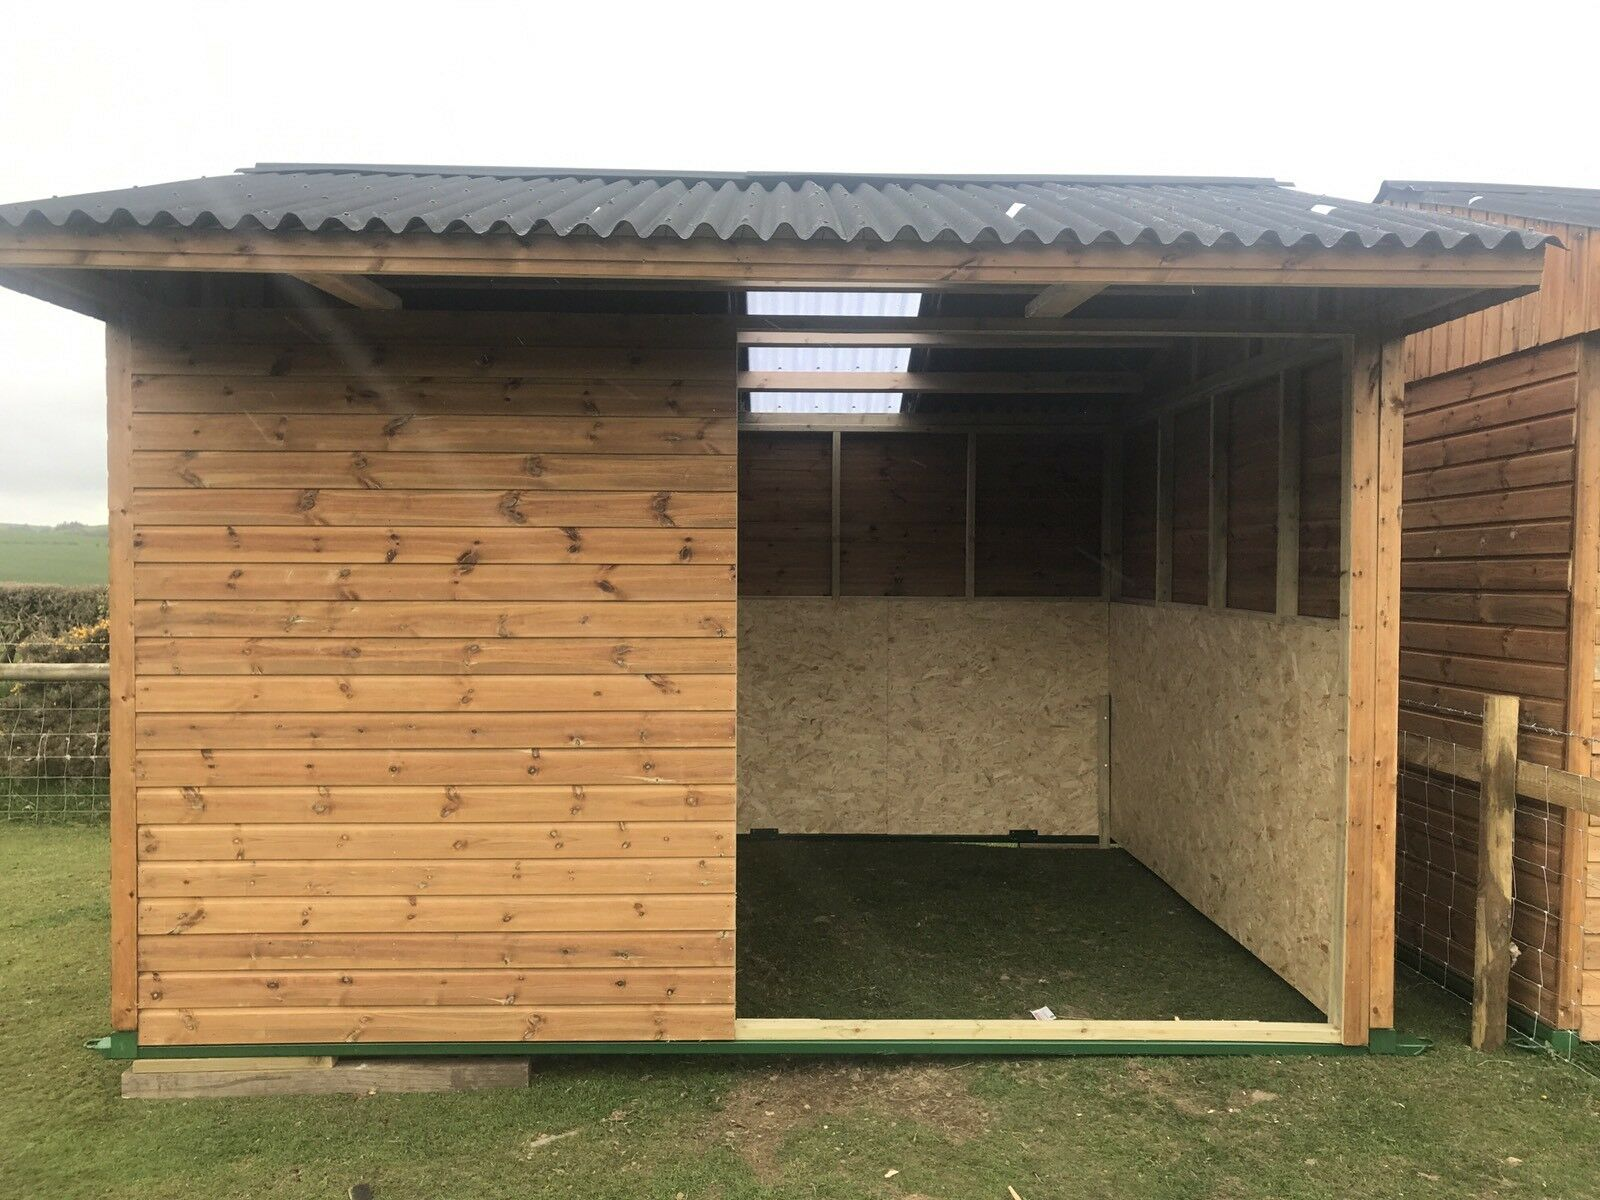 12 X12 FIELD SHELTER FOR SALE (MOBILE STABLE SHELTER) WOODEN TIMBER